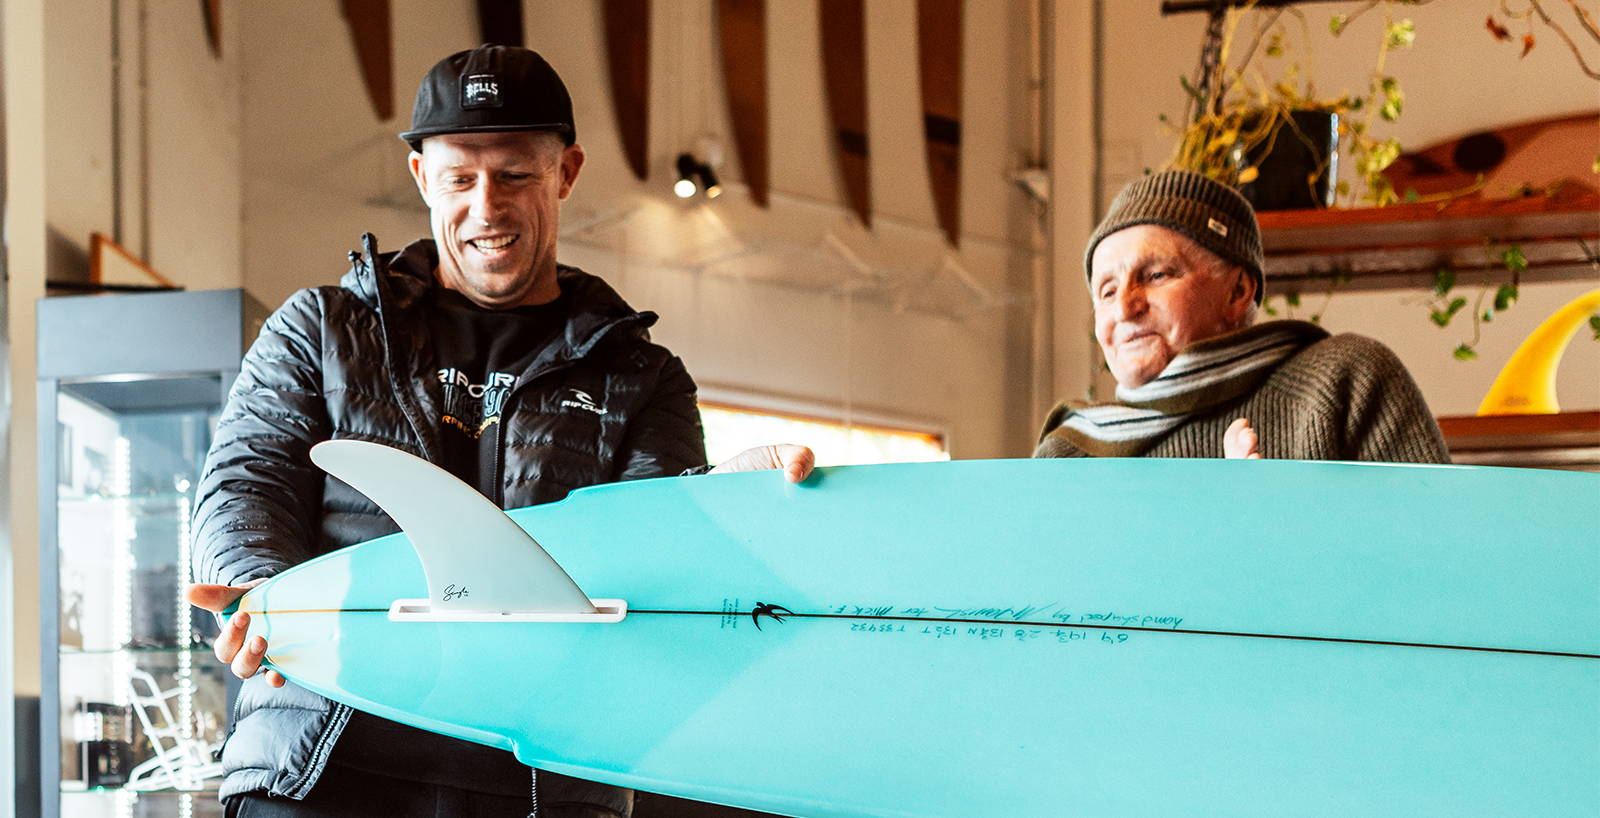 THE SHAPER AWARDS: MICK SURFS THE MCTAVISH BLUEBIRD